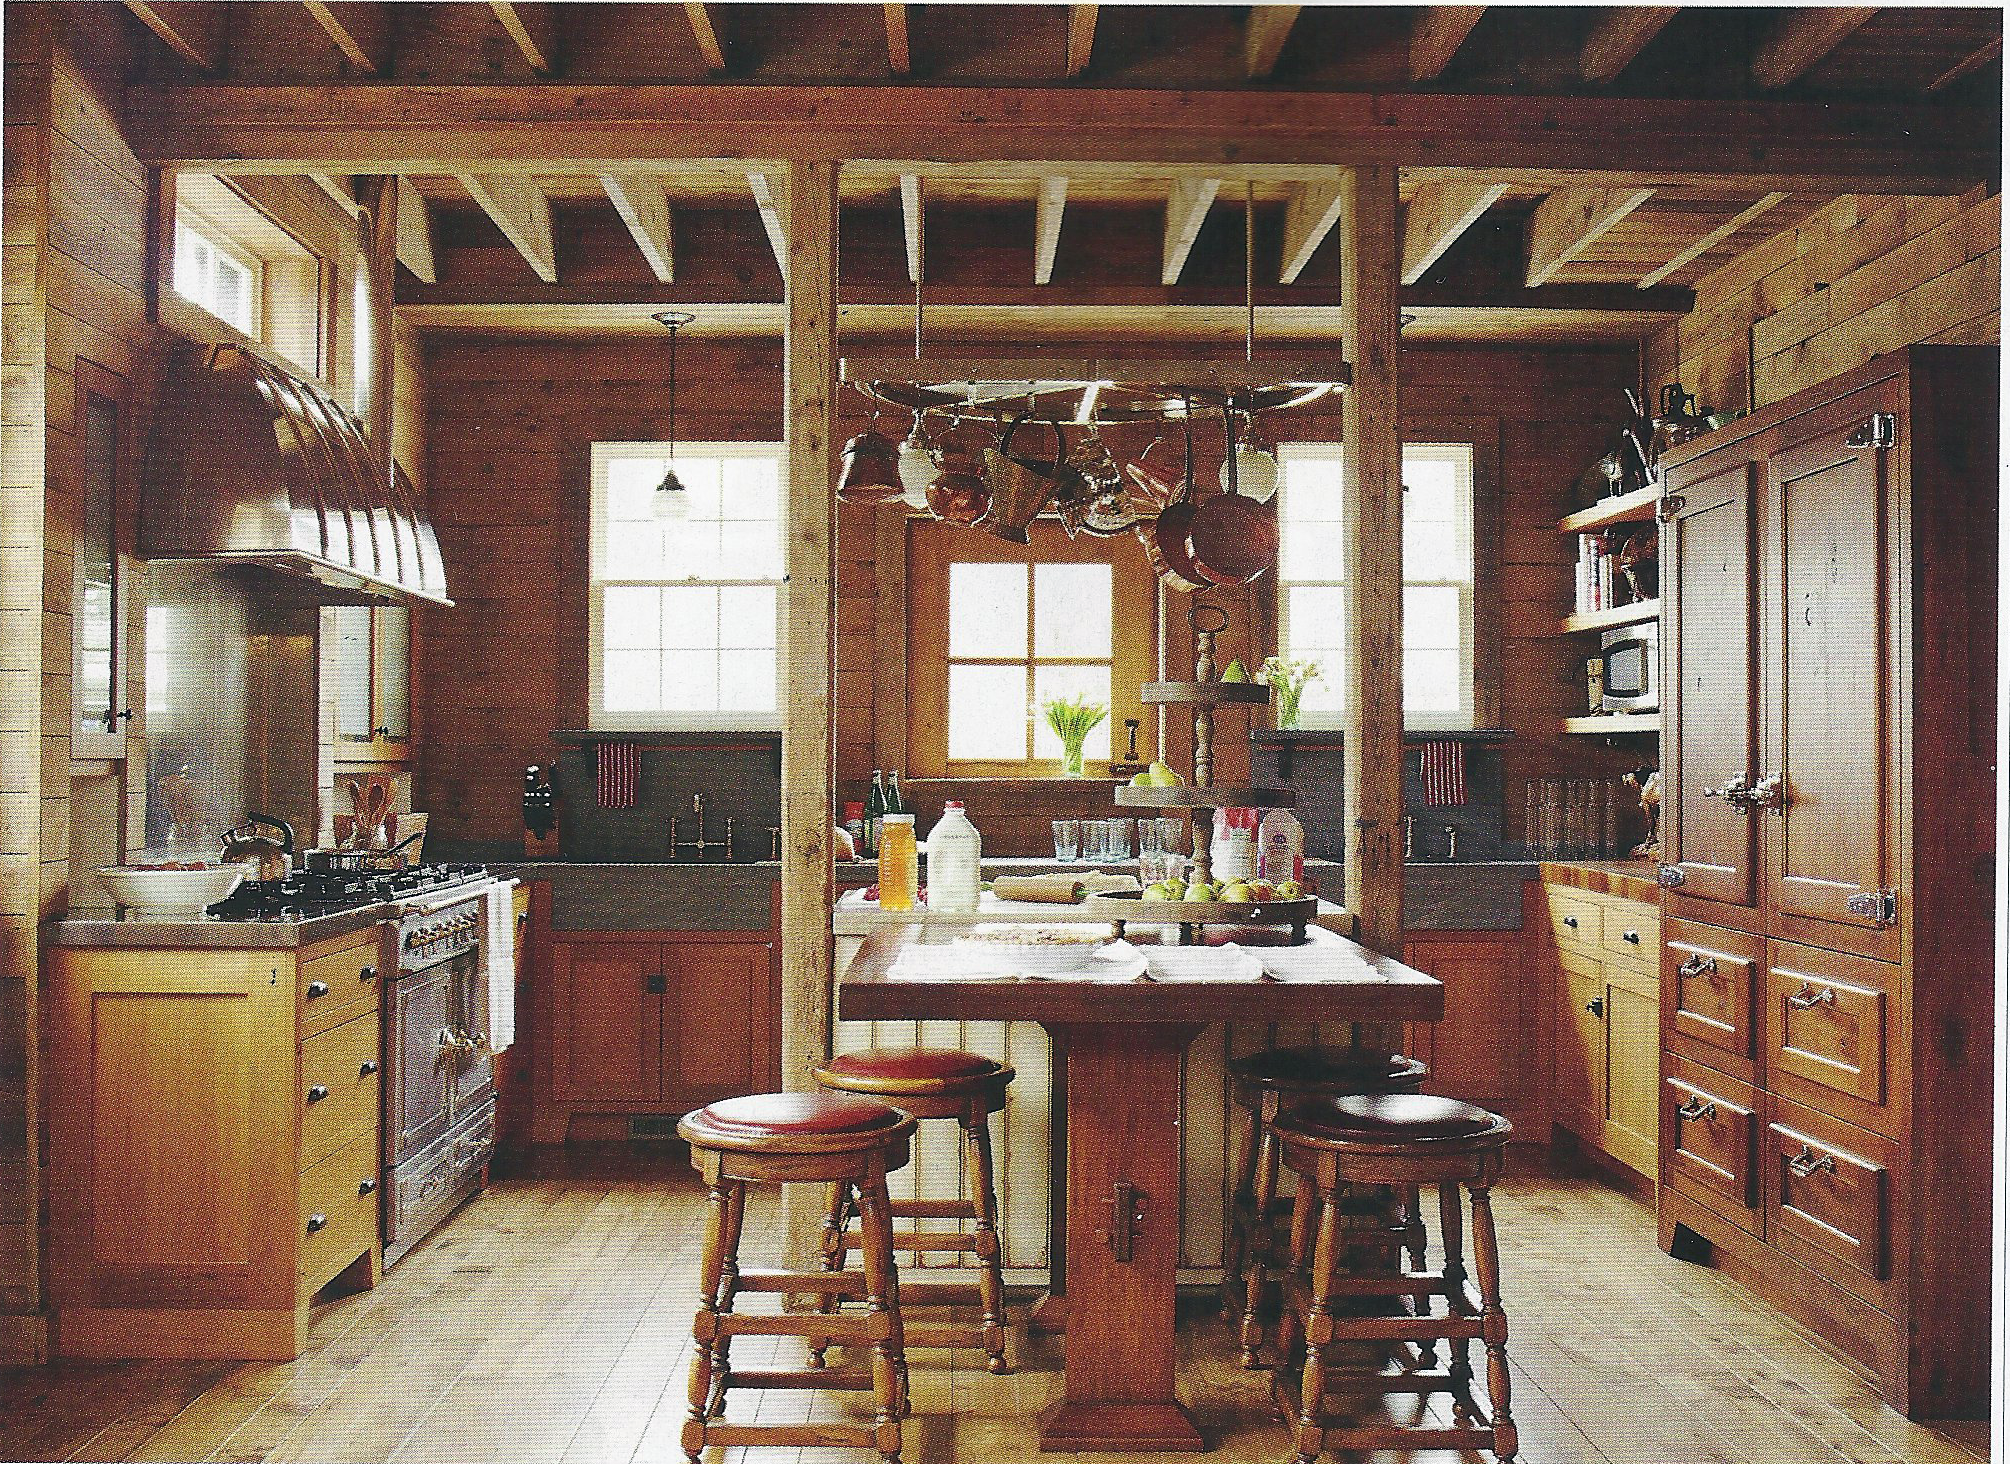 Old World Kitchen Design Old World Kitchens Meet The 21st Century Roomology